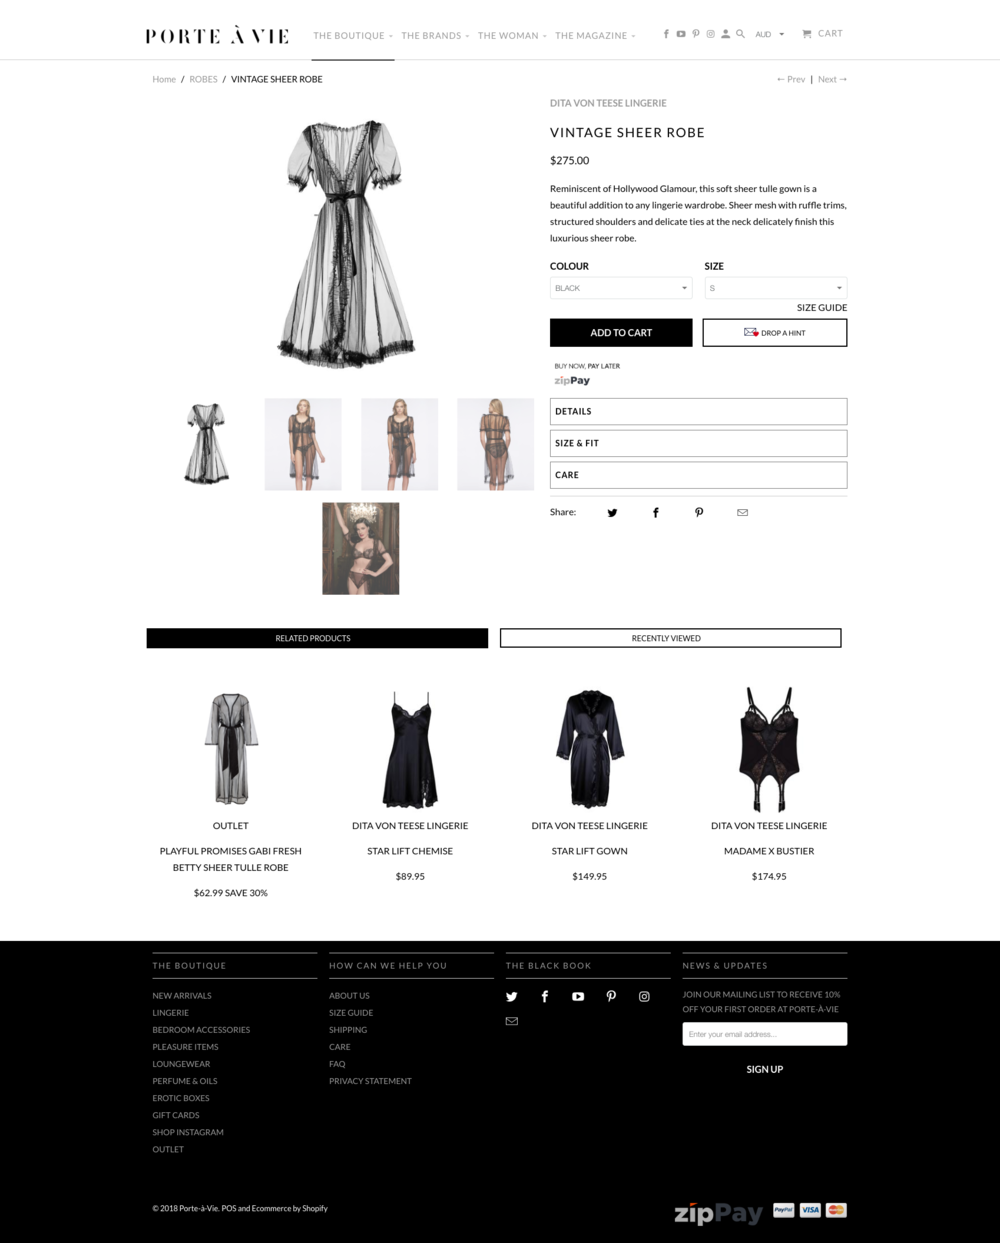 screencapture-porteavie-collections-robe-products-vintage-sheer-robe-2018-05-28-12_06_22.png